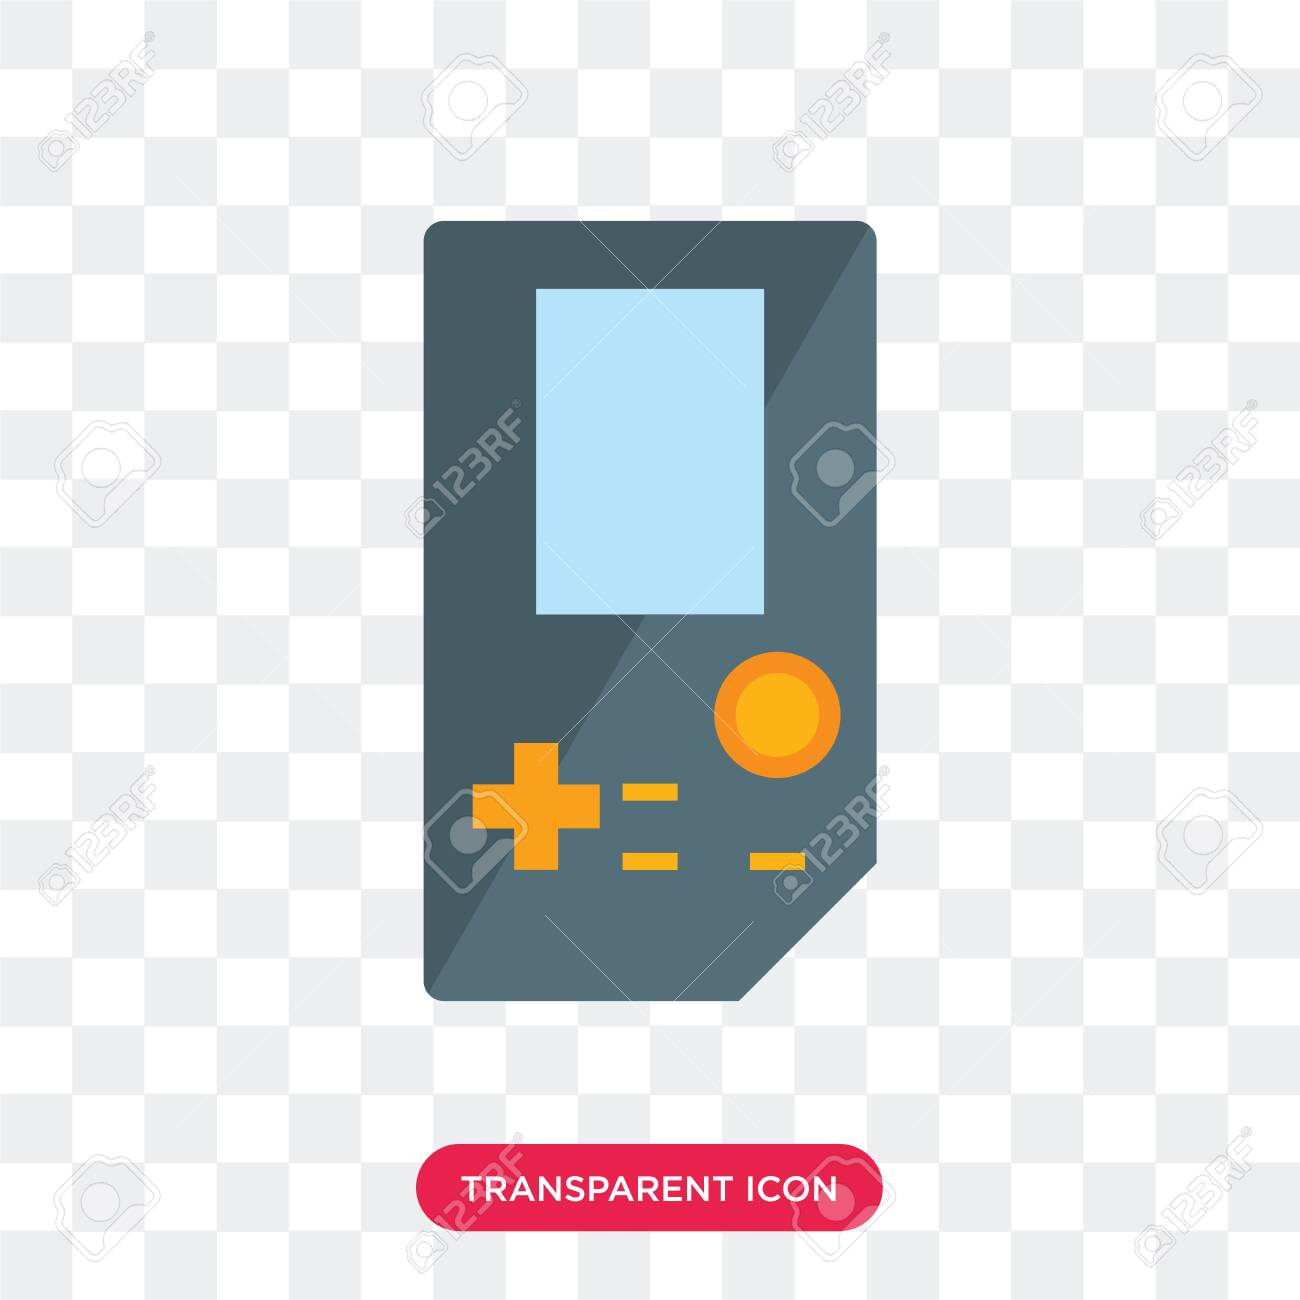 game vector icon isolated on transparent background - 130332475